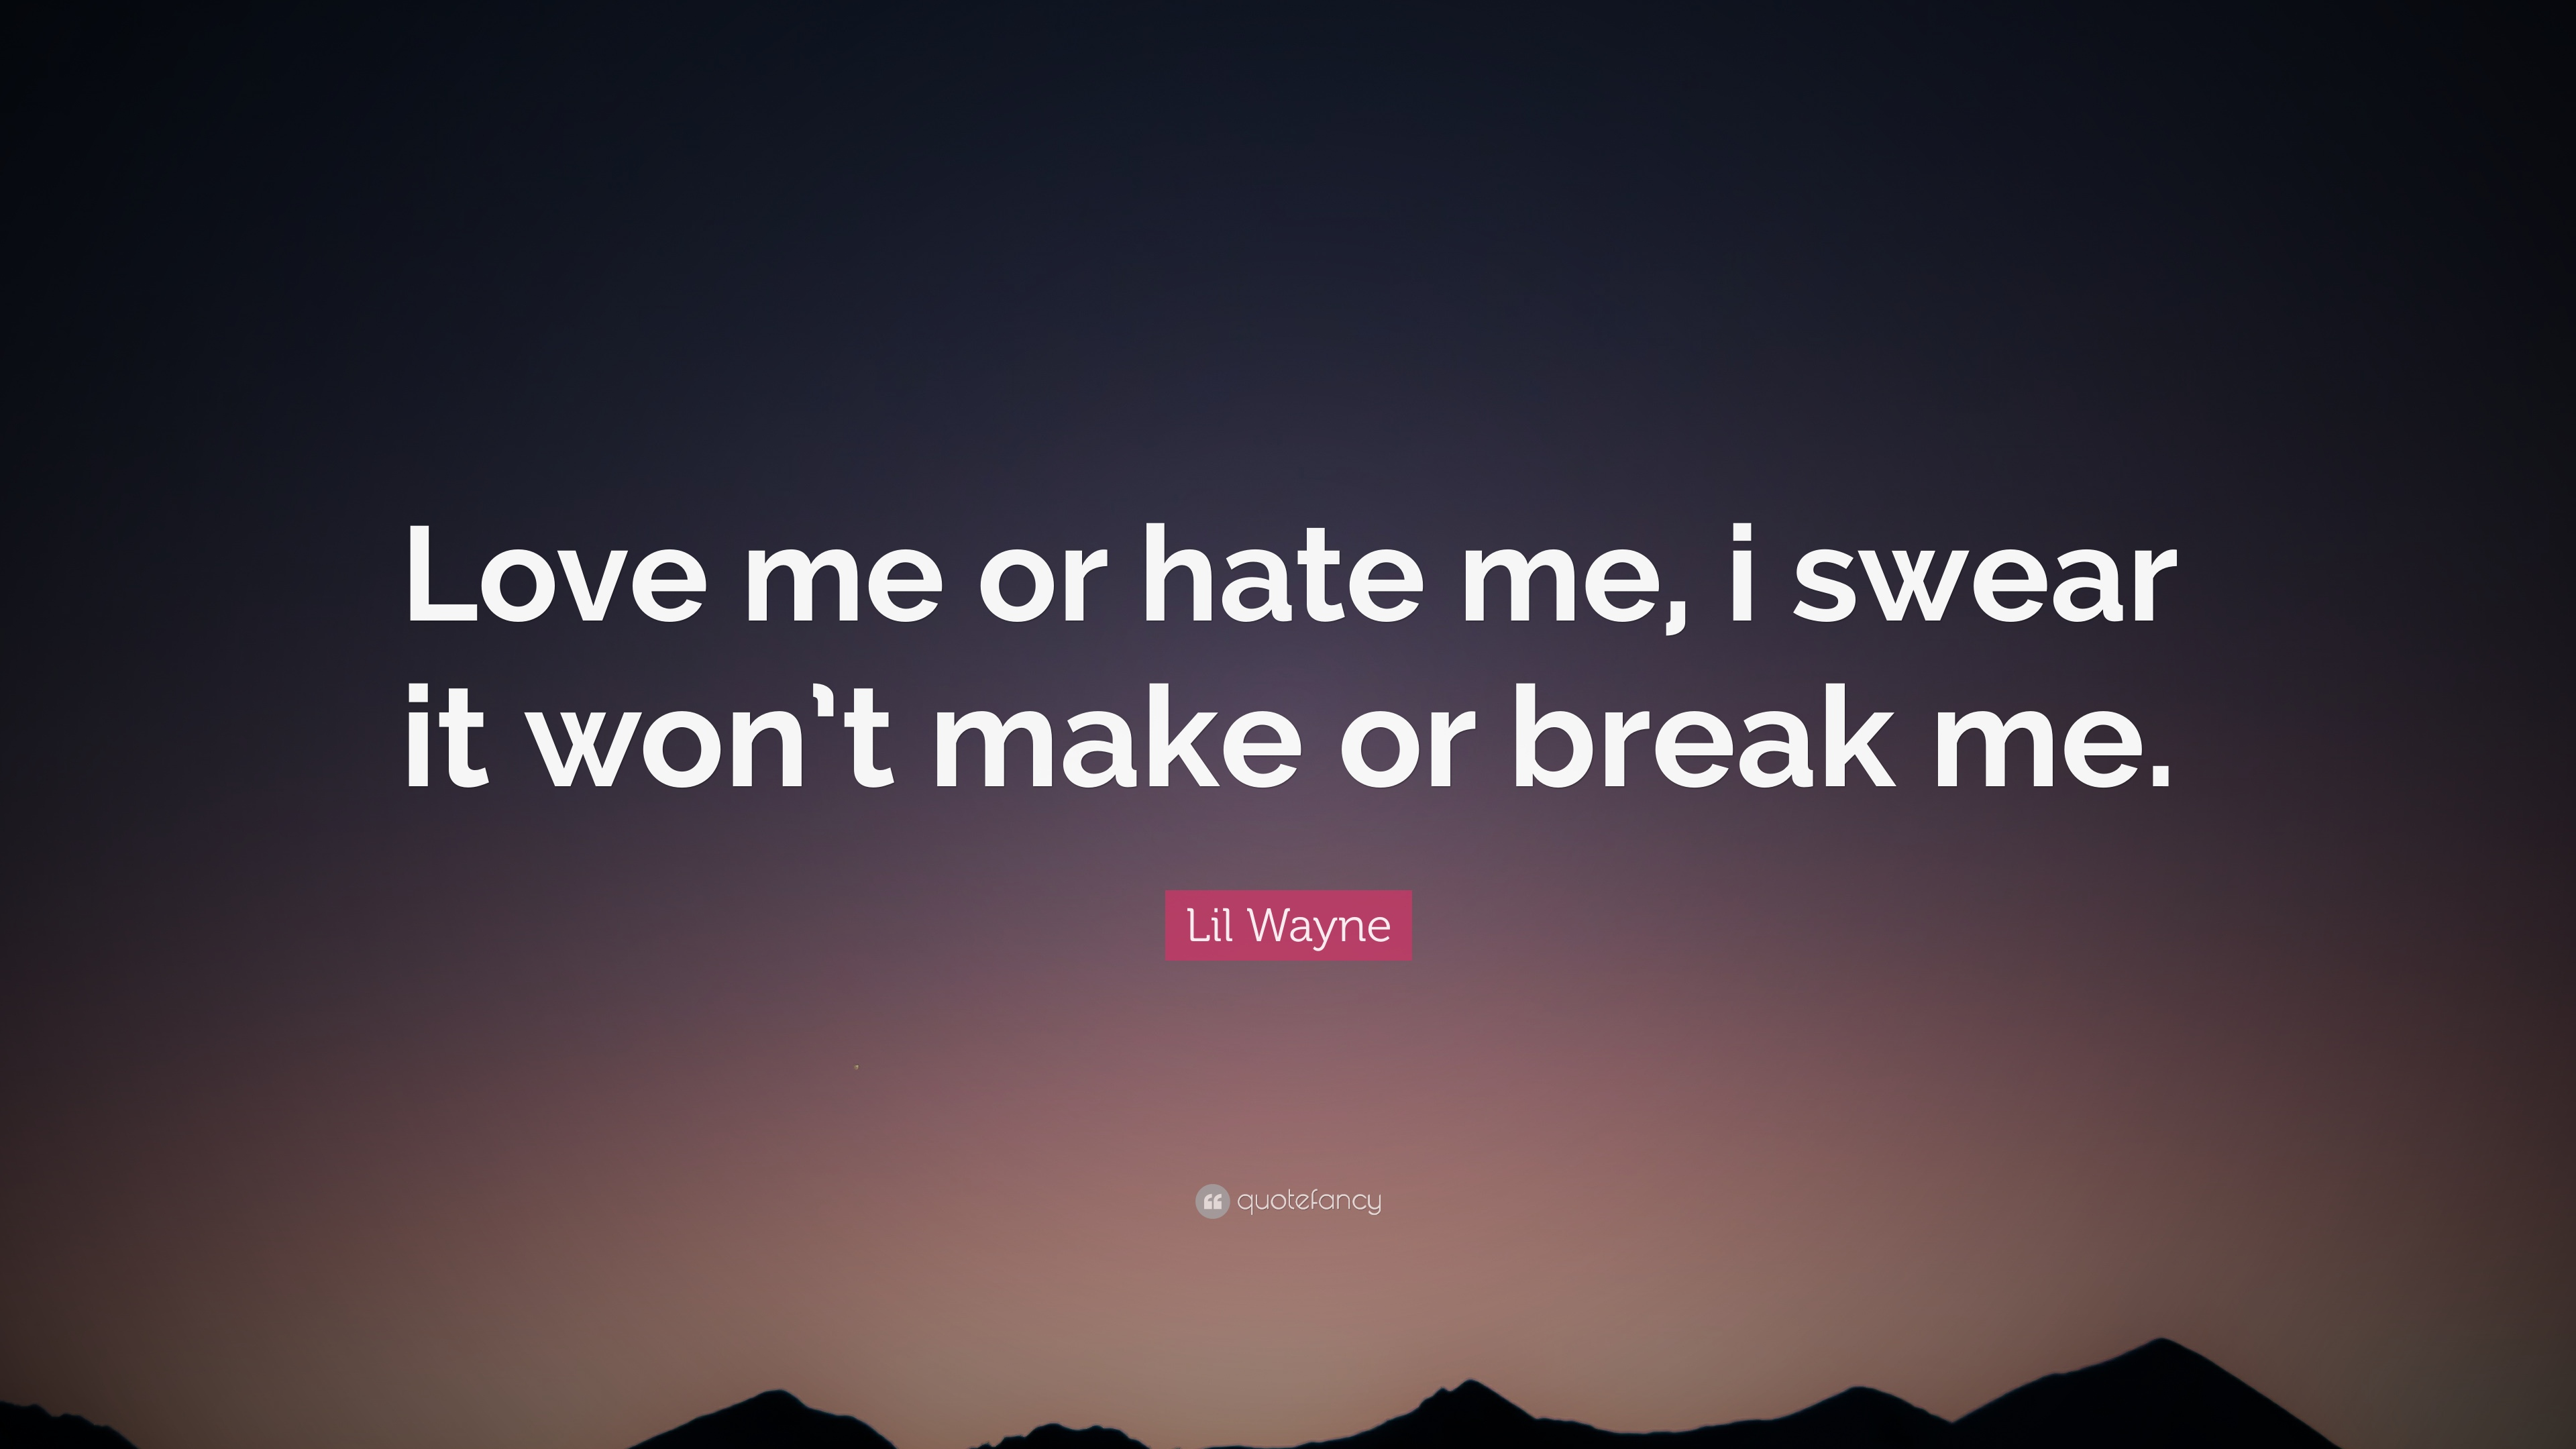 Lil Wayne Quote: ?Love me or hate me, i swear it won t make or break me.? (12 wallpapers ...